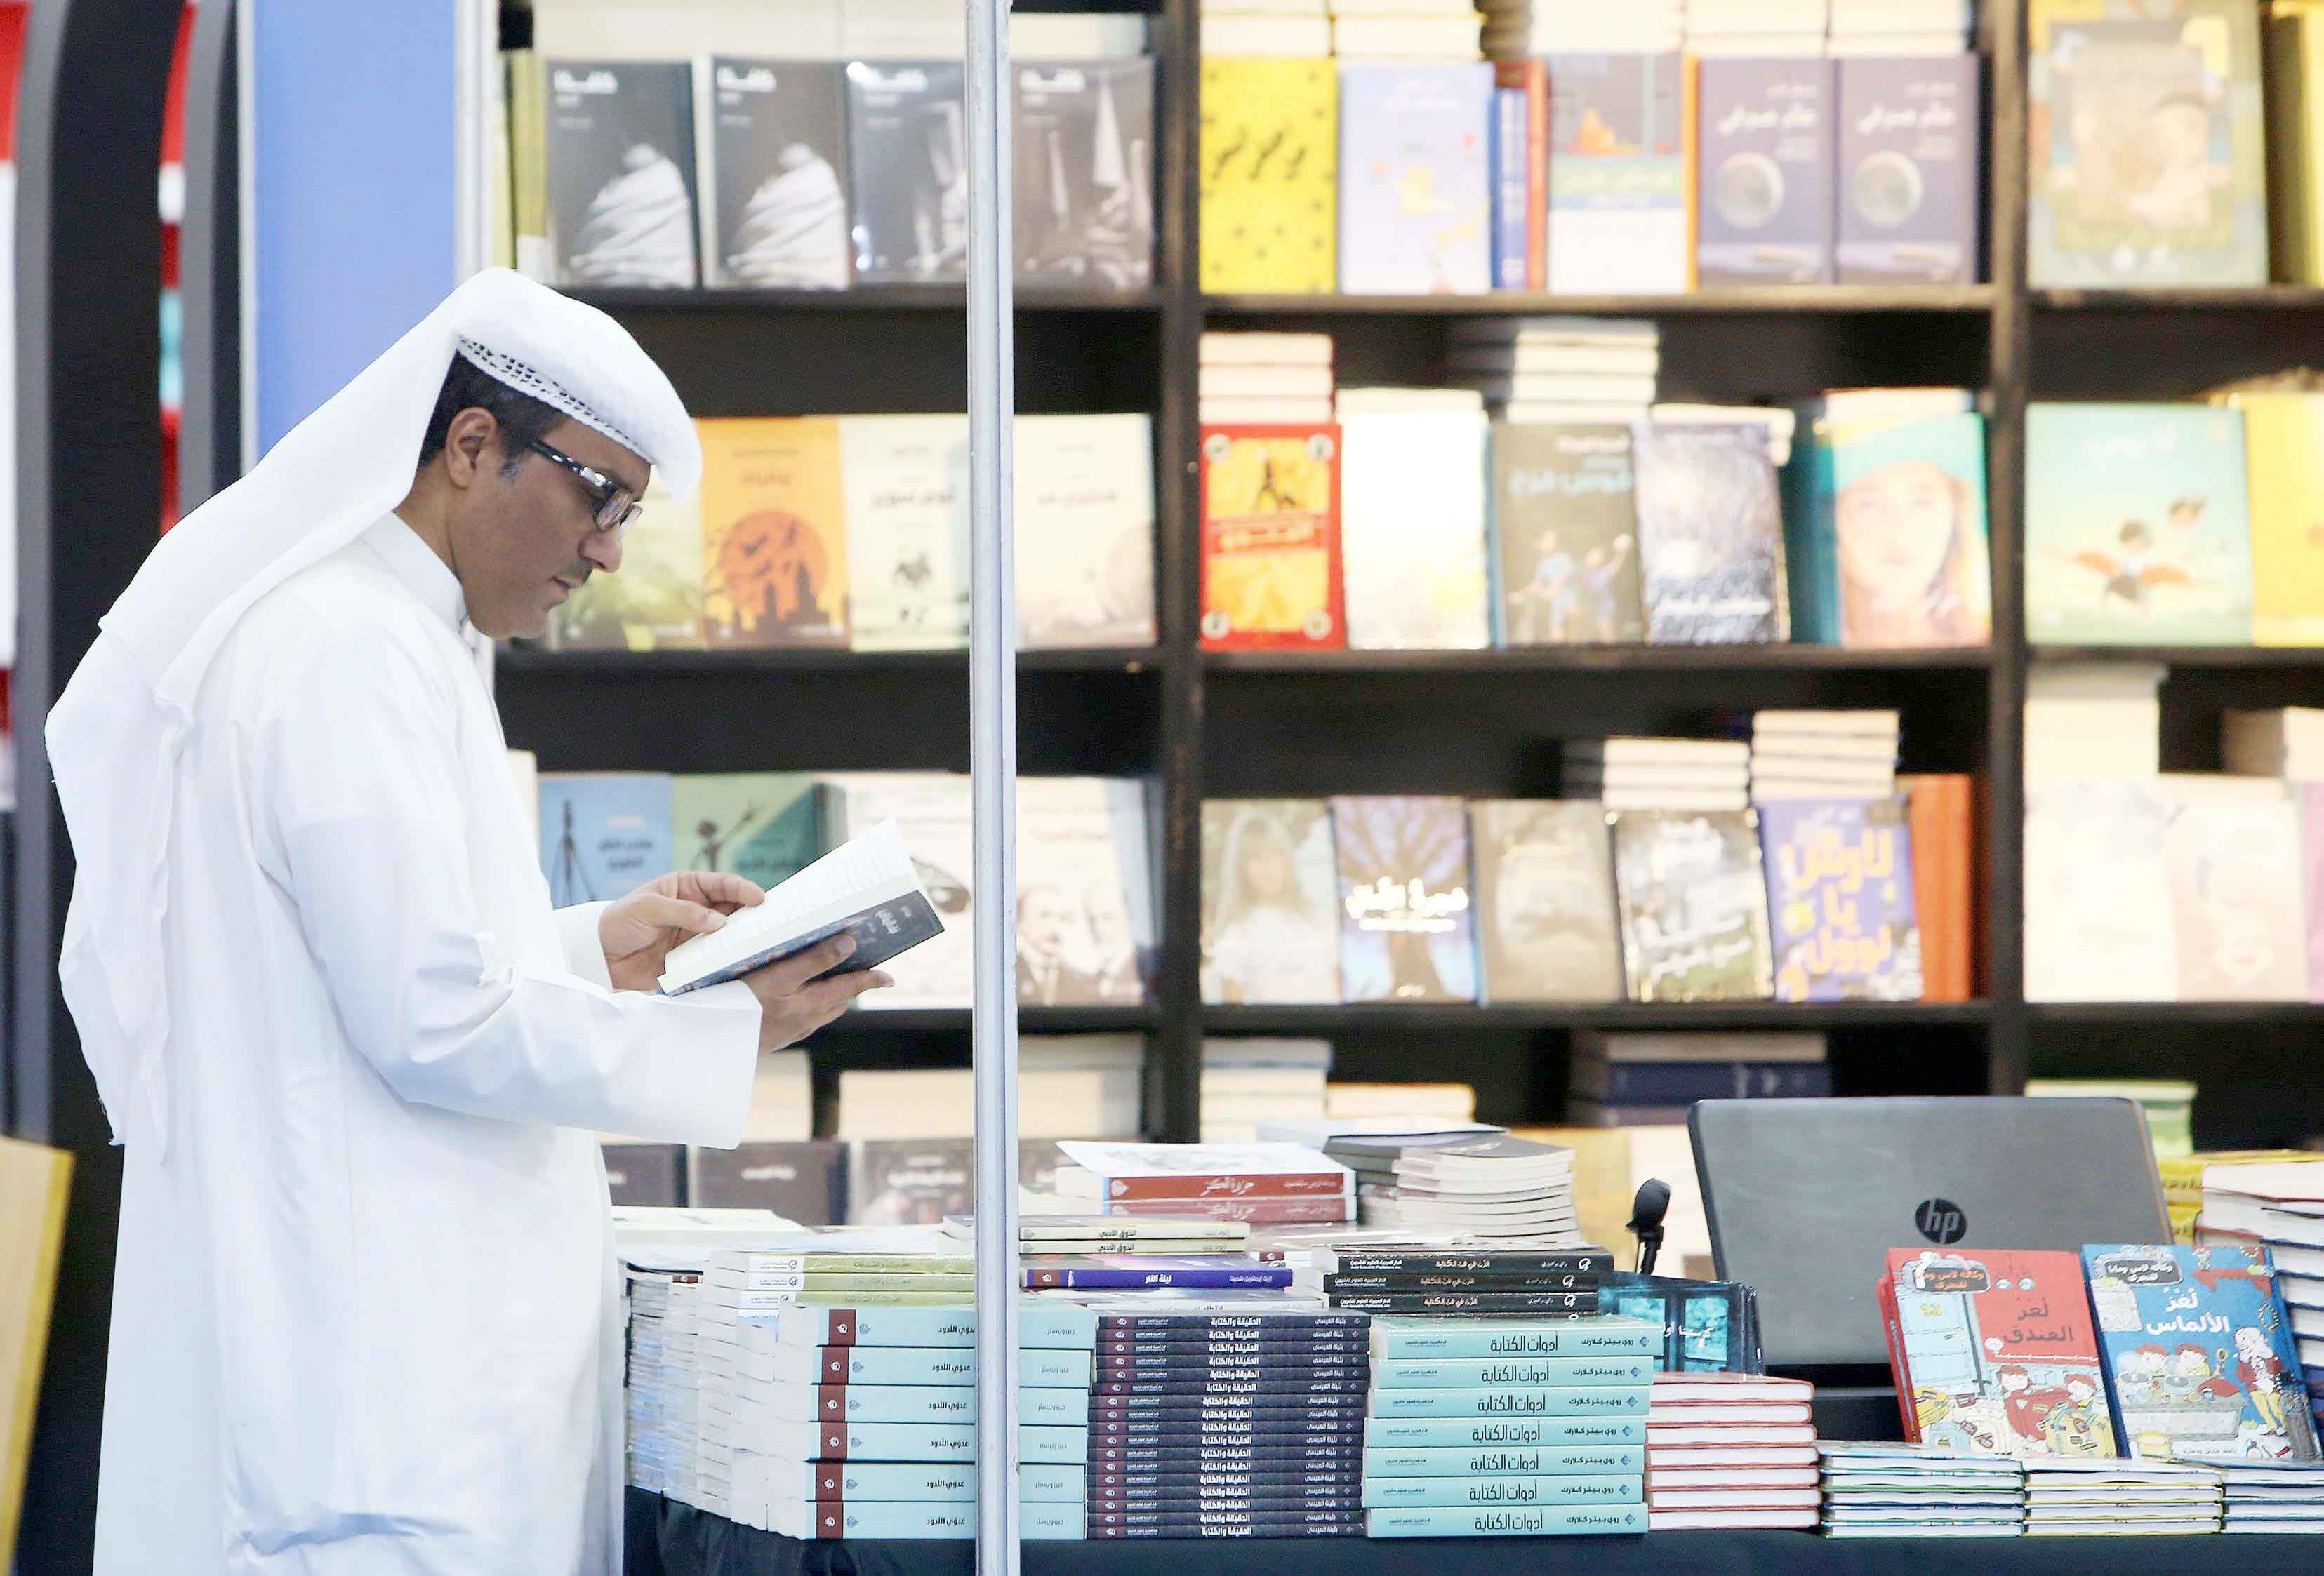 Backward in coming forward. A Kuwaiti man reads a book during the 43rd international book fair in Kuwait City, last November. (AFP)